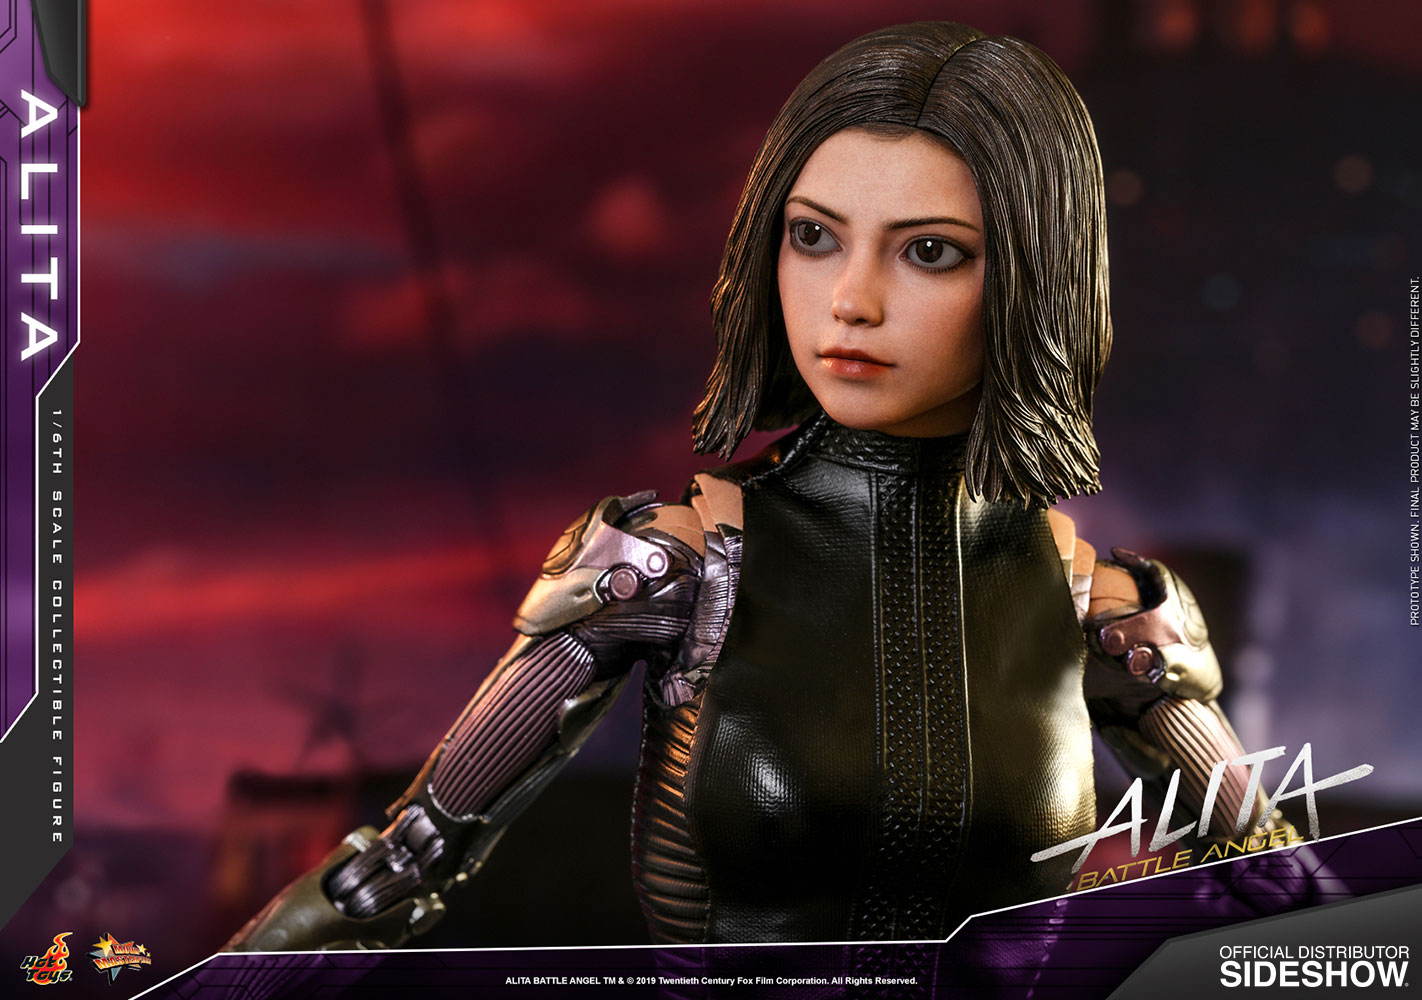 Alita - Battle Angel - Sixth Scale Figure by Hot Toys